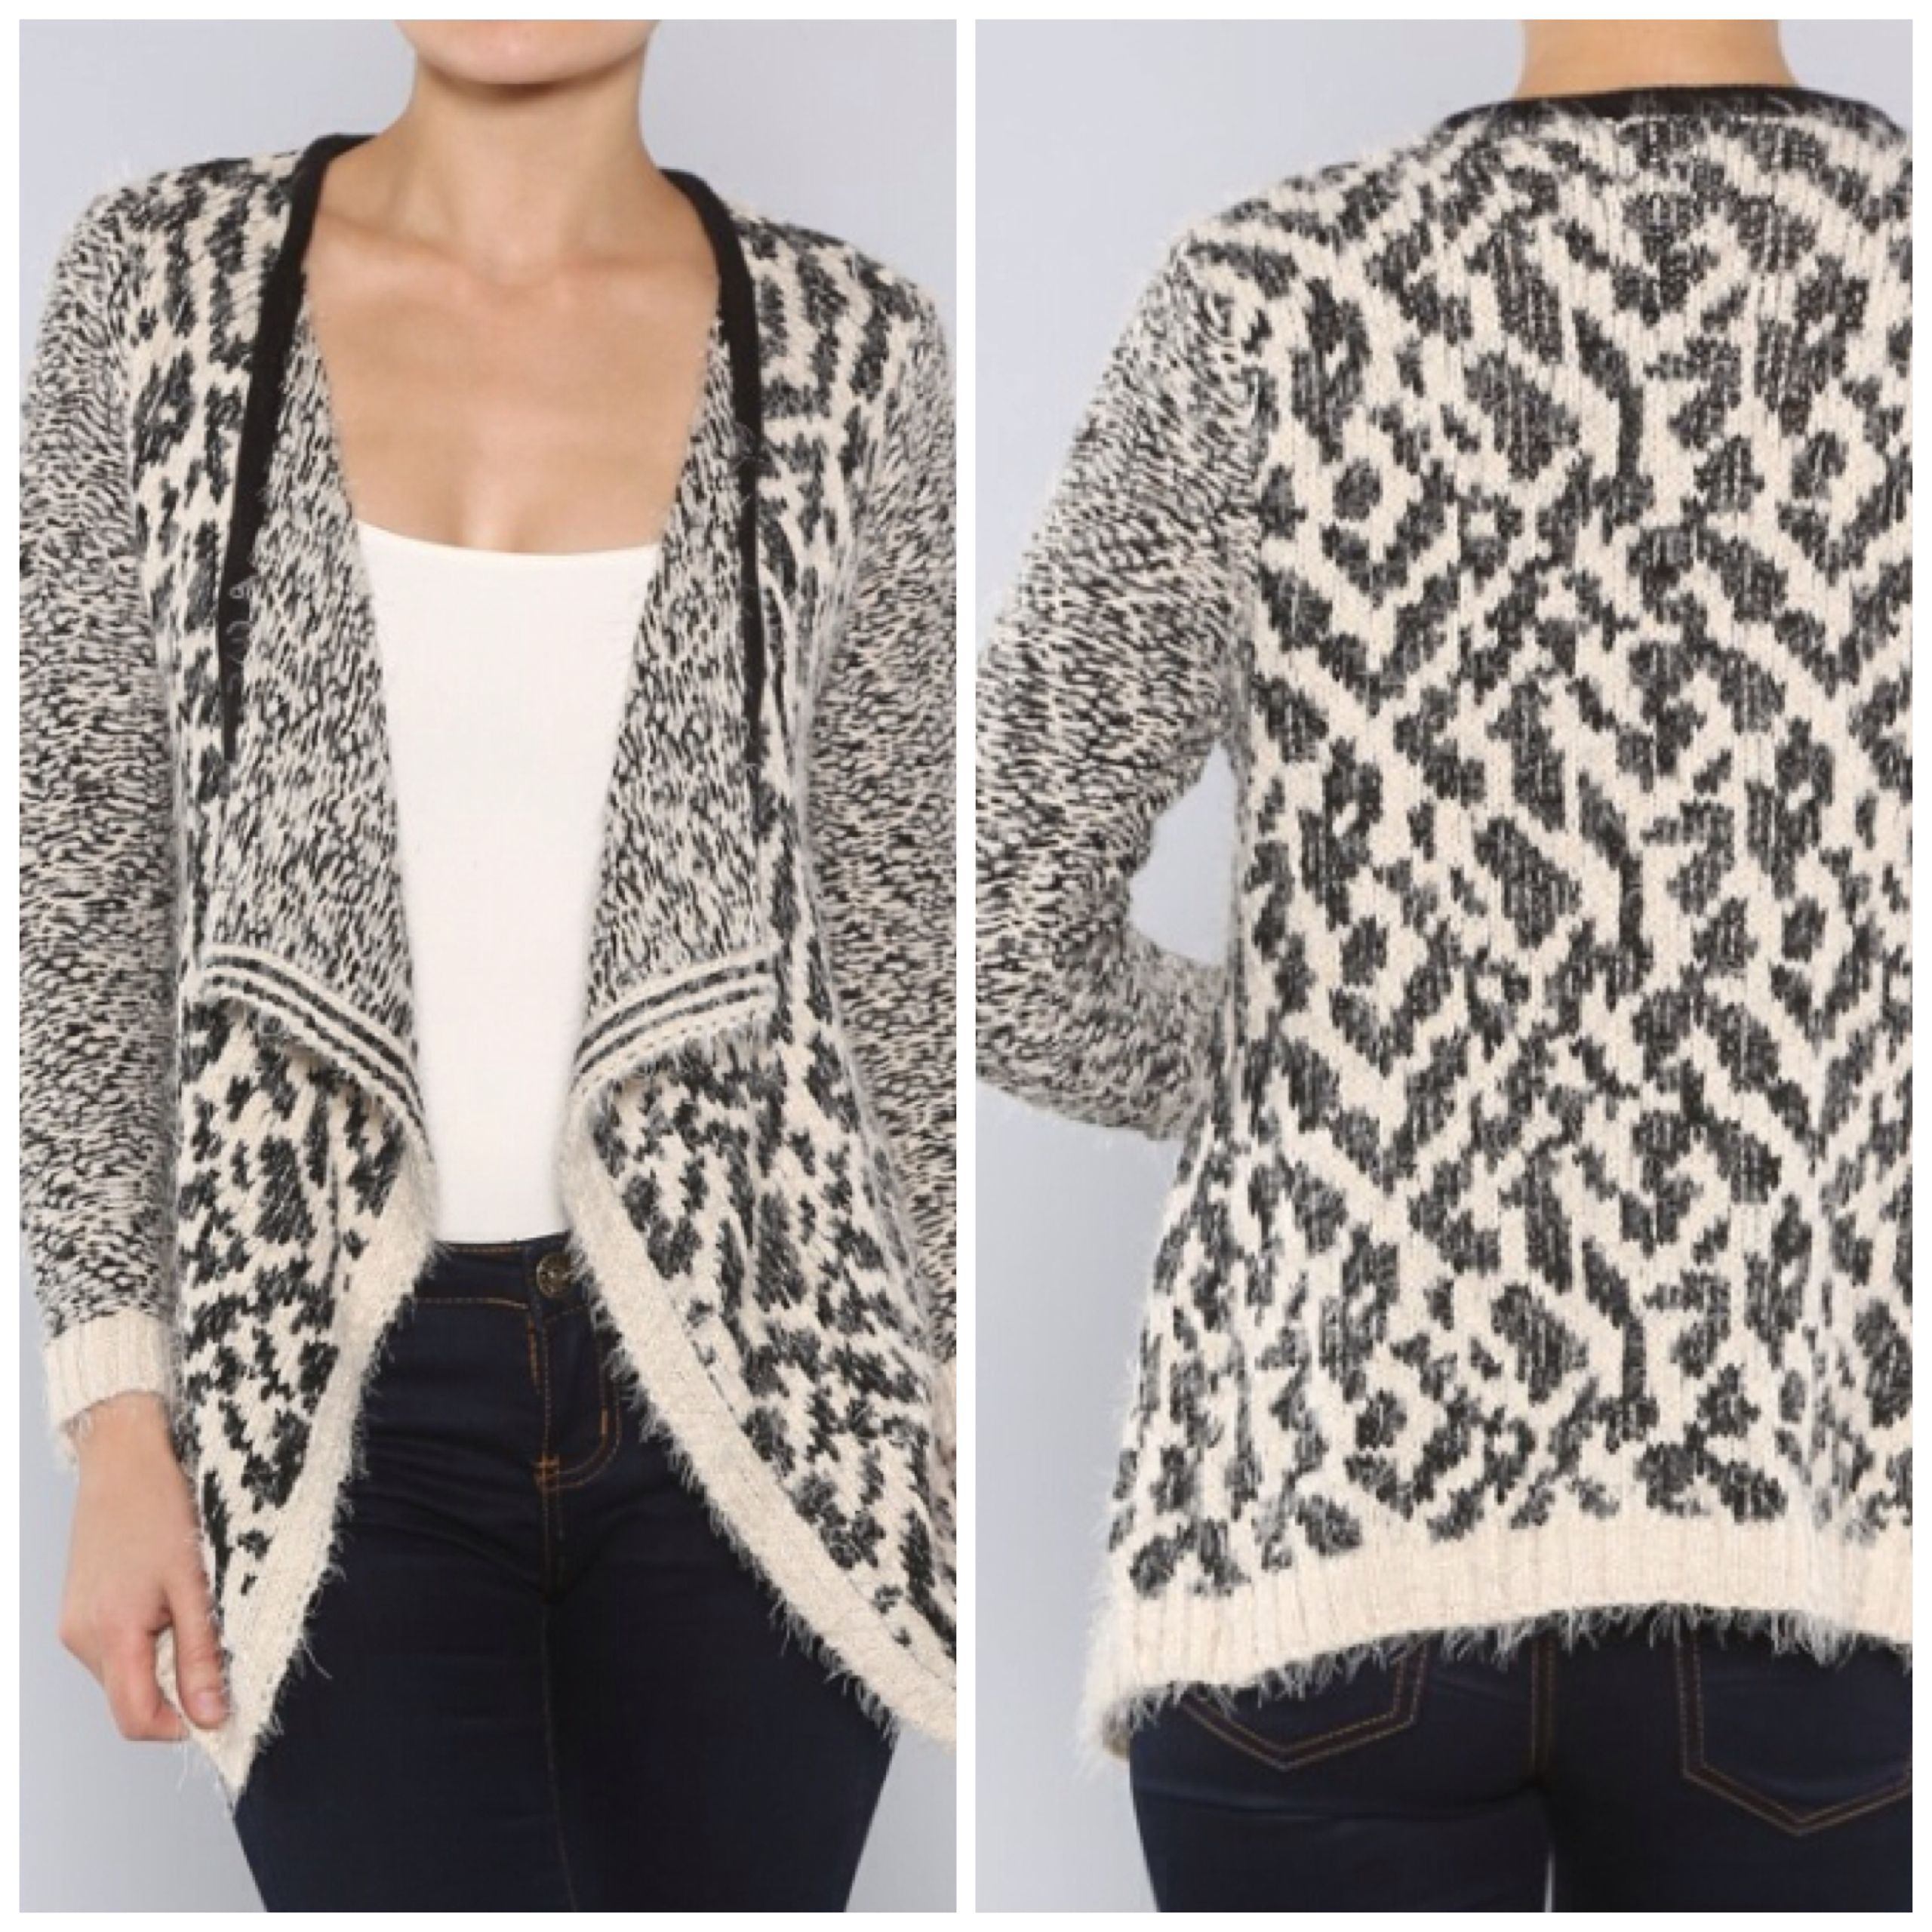 Just in! Cozy up in this furry leopard cardigan. $41 ...